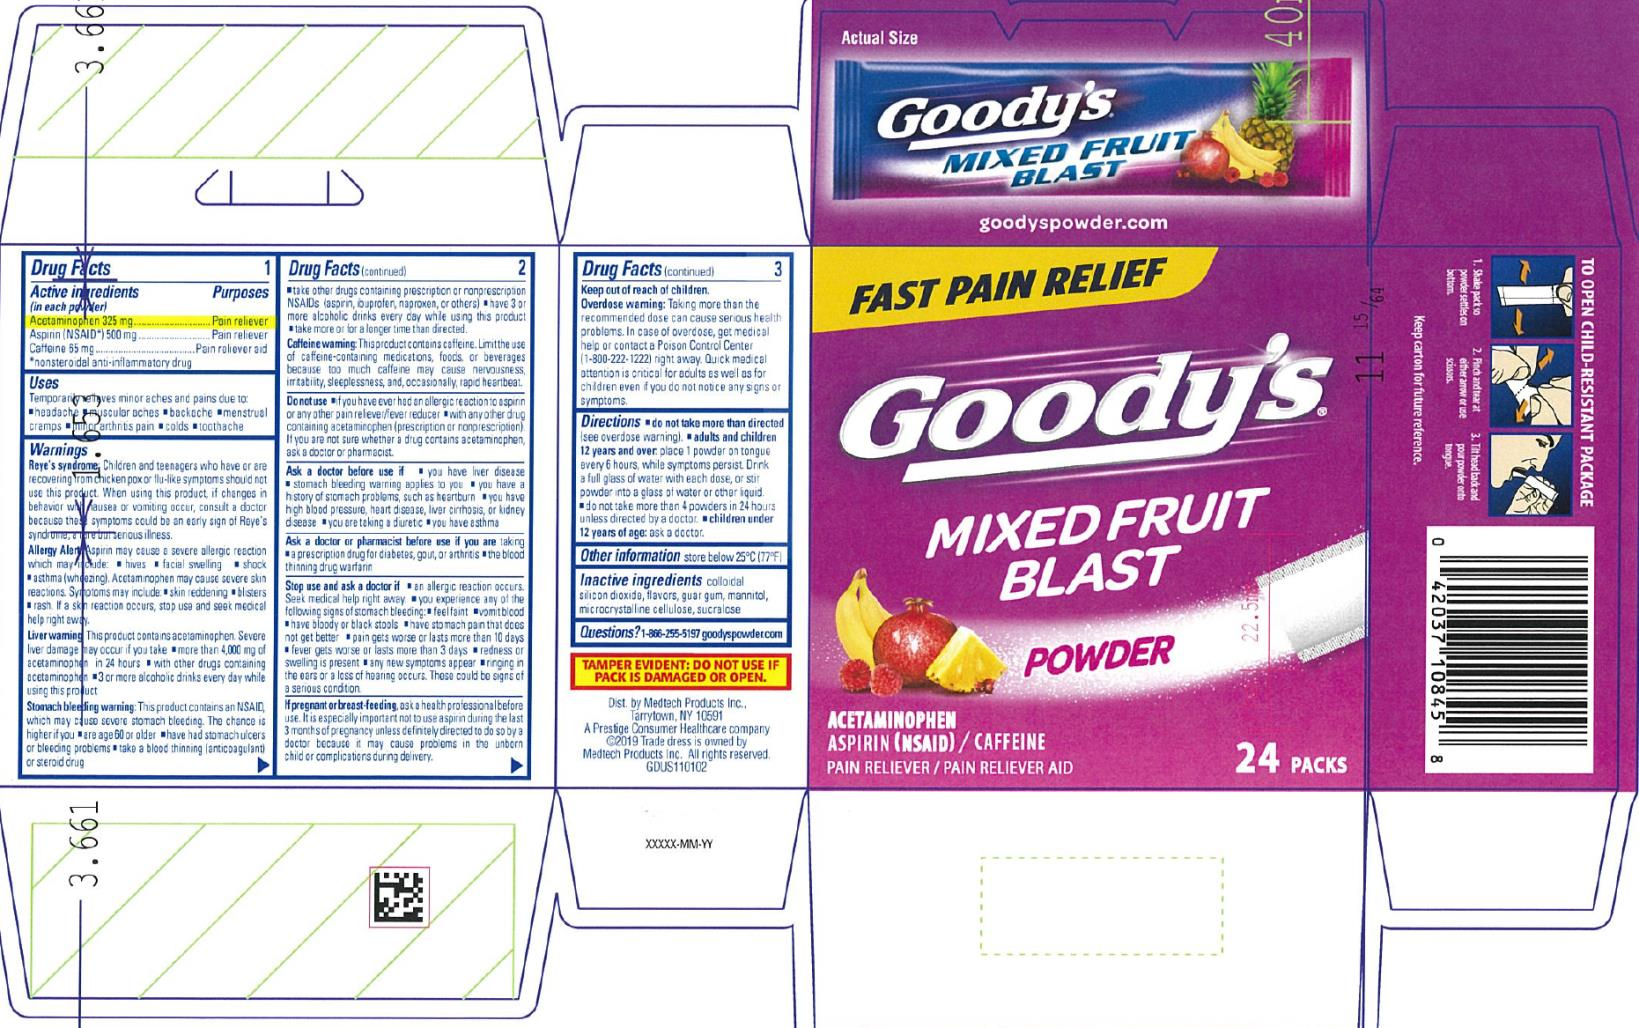 PRINCIPAL DISPLAY PANEL Goody's Mixed Fruit Blast Acetaminophen Aspirin (NSAID)/ Caffeine 24 sealed powder packs